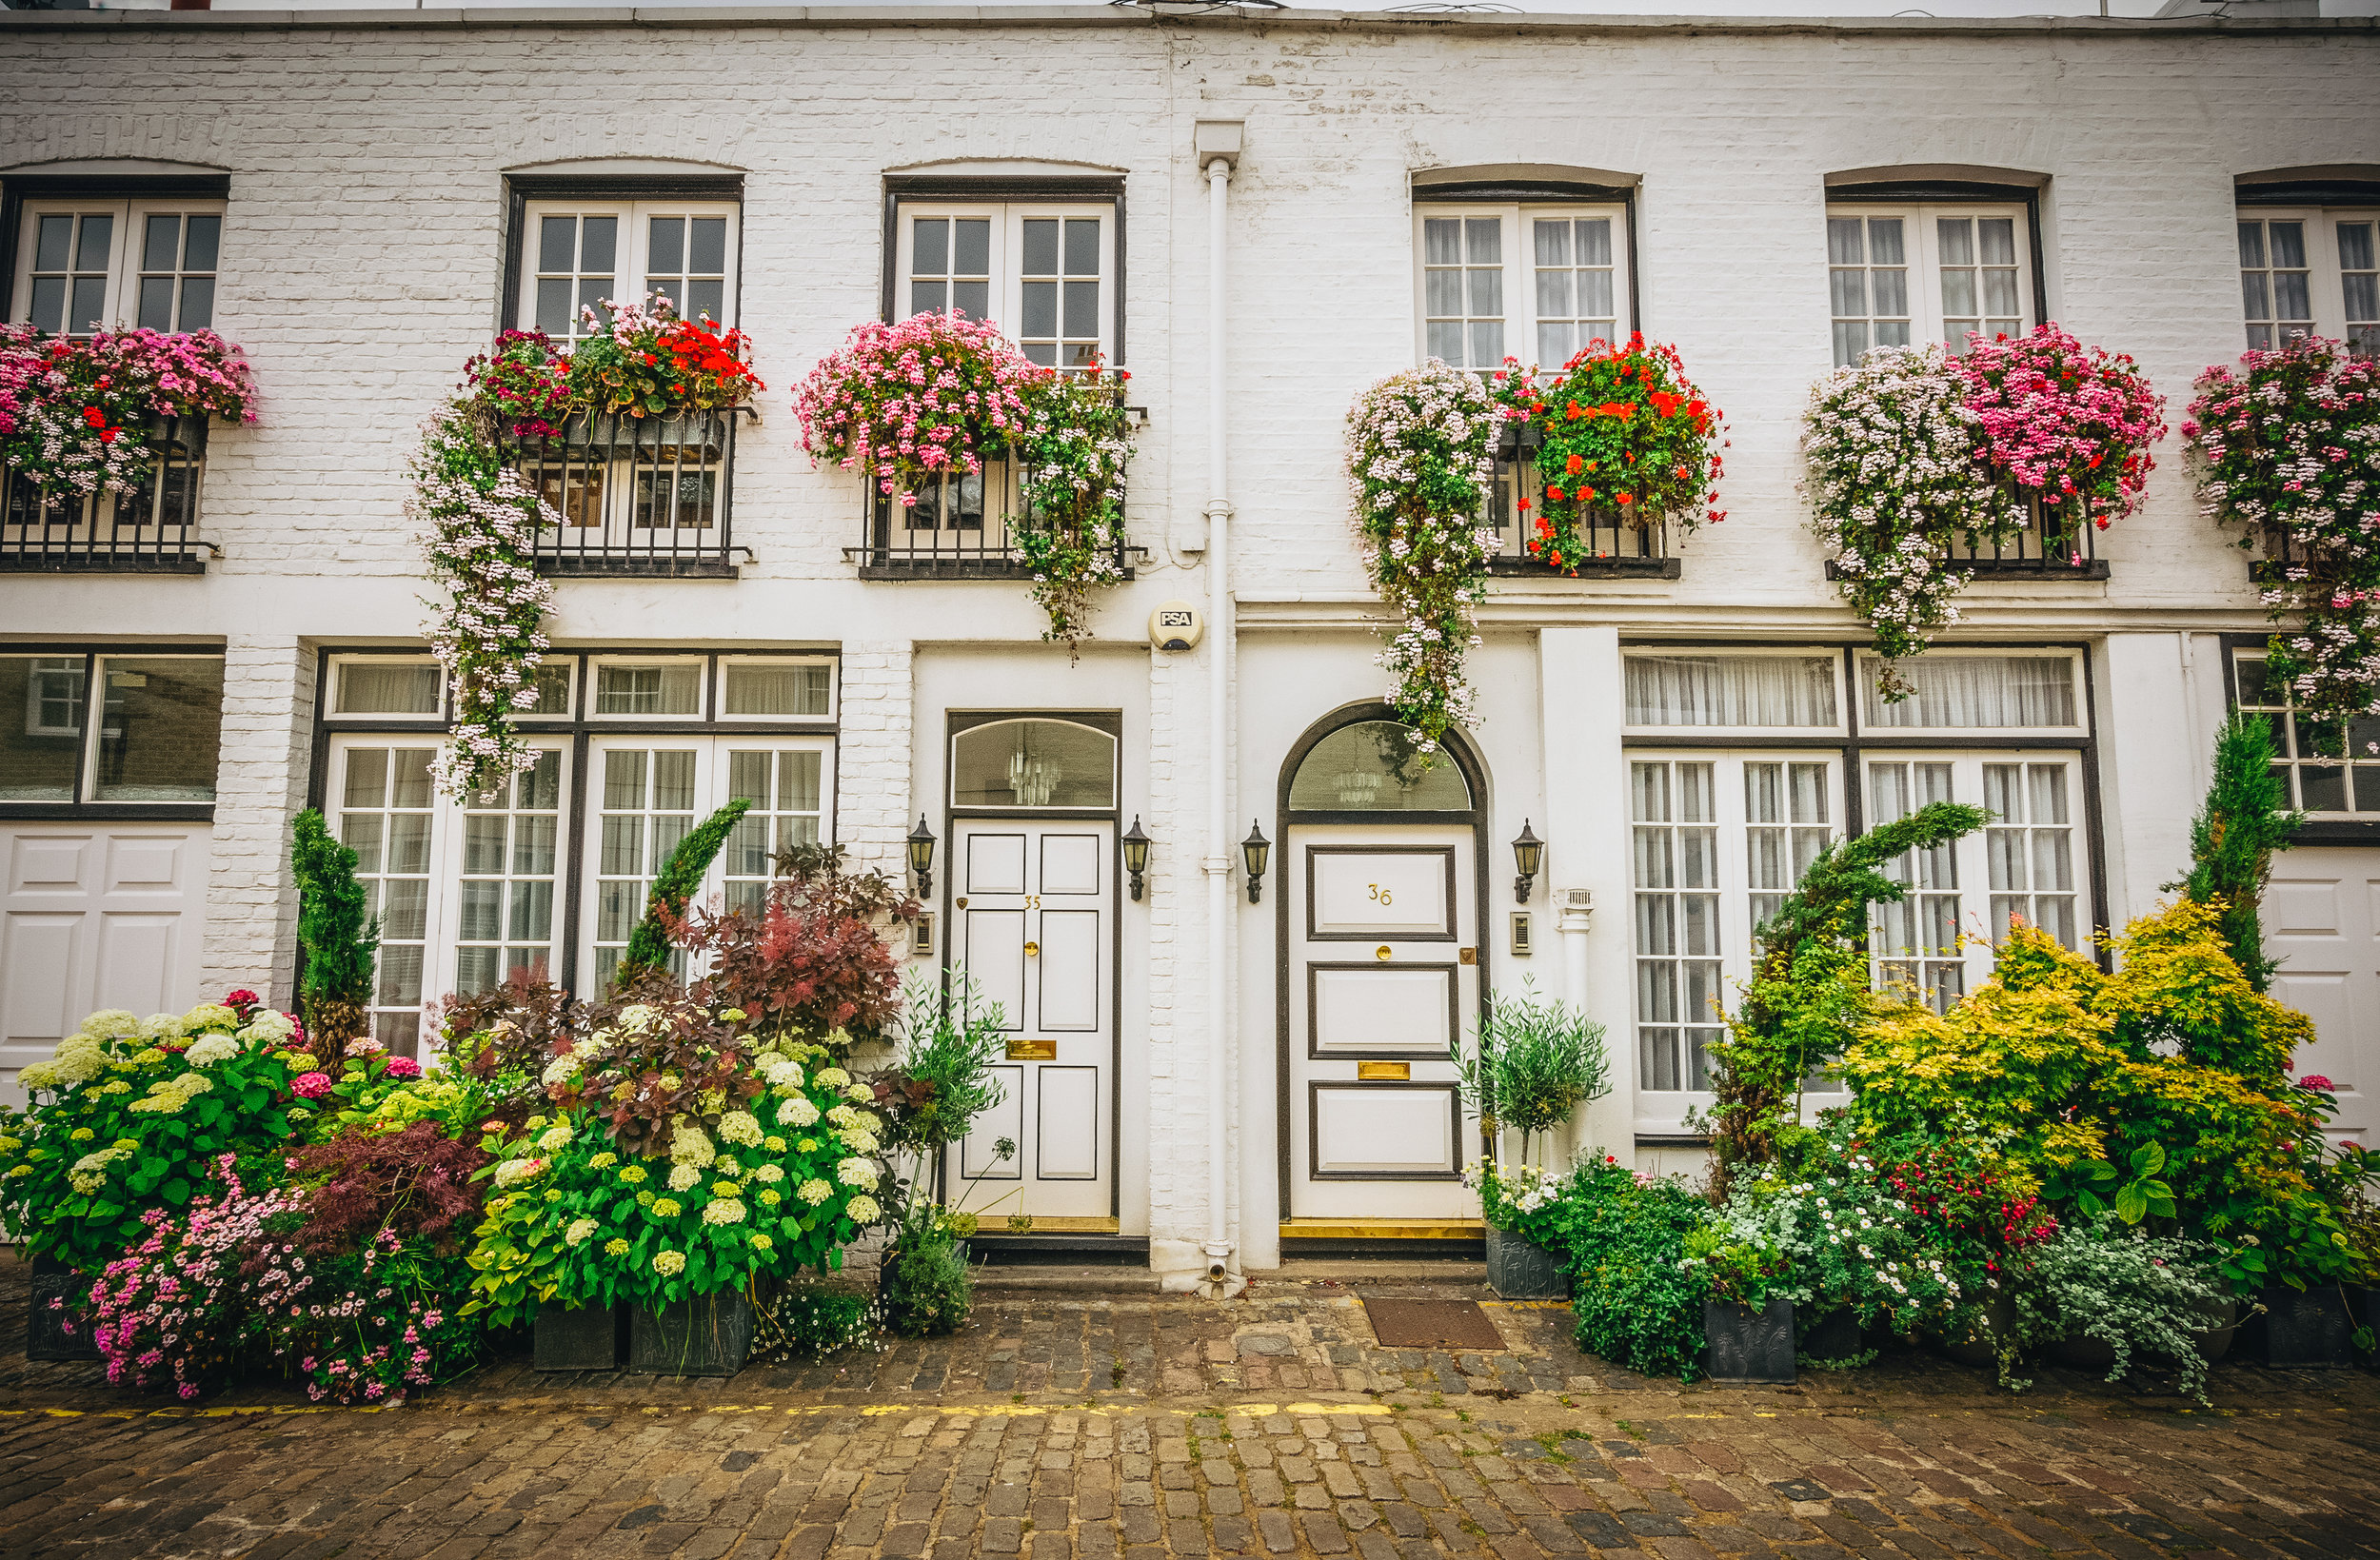 The mews of Kensington. It's weird to me than many of these were horse stables now converted into beautiful housing, adorned with flowers...and the occasional horse dropping.